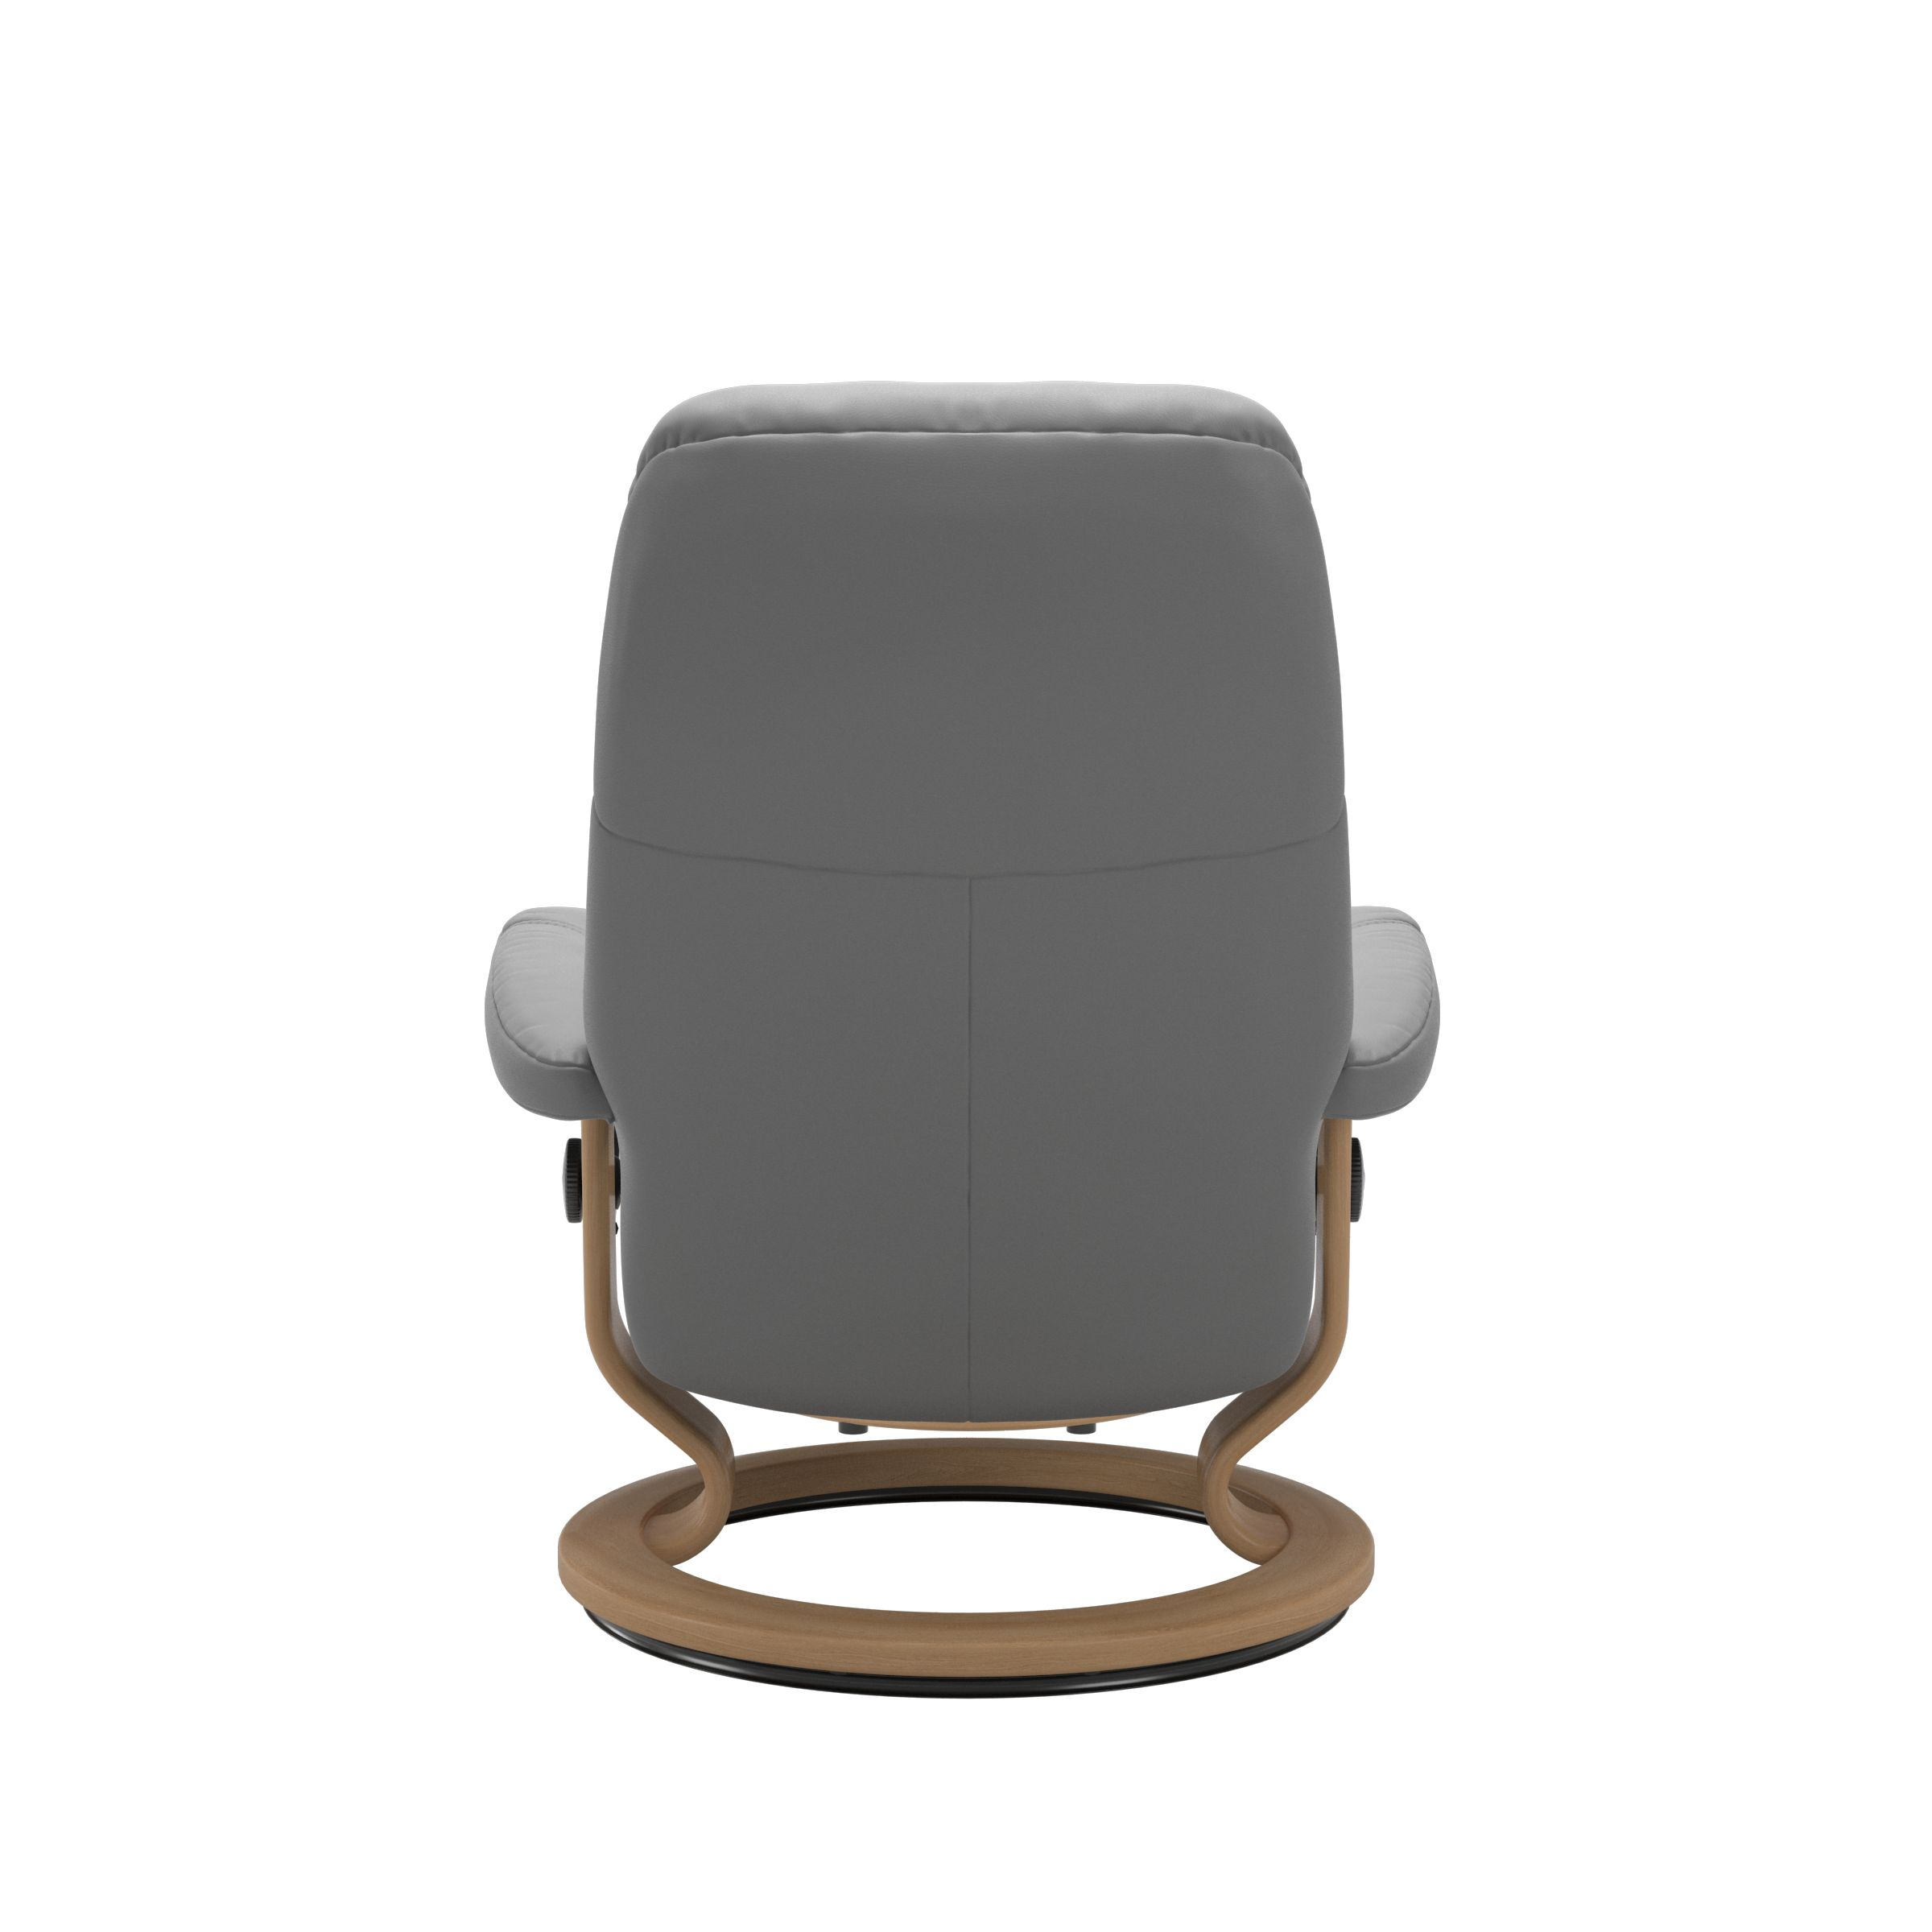 Stressless Consul Wild Dove Large Recliner Chair